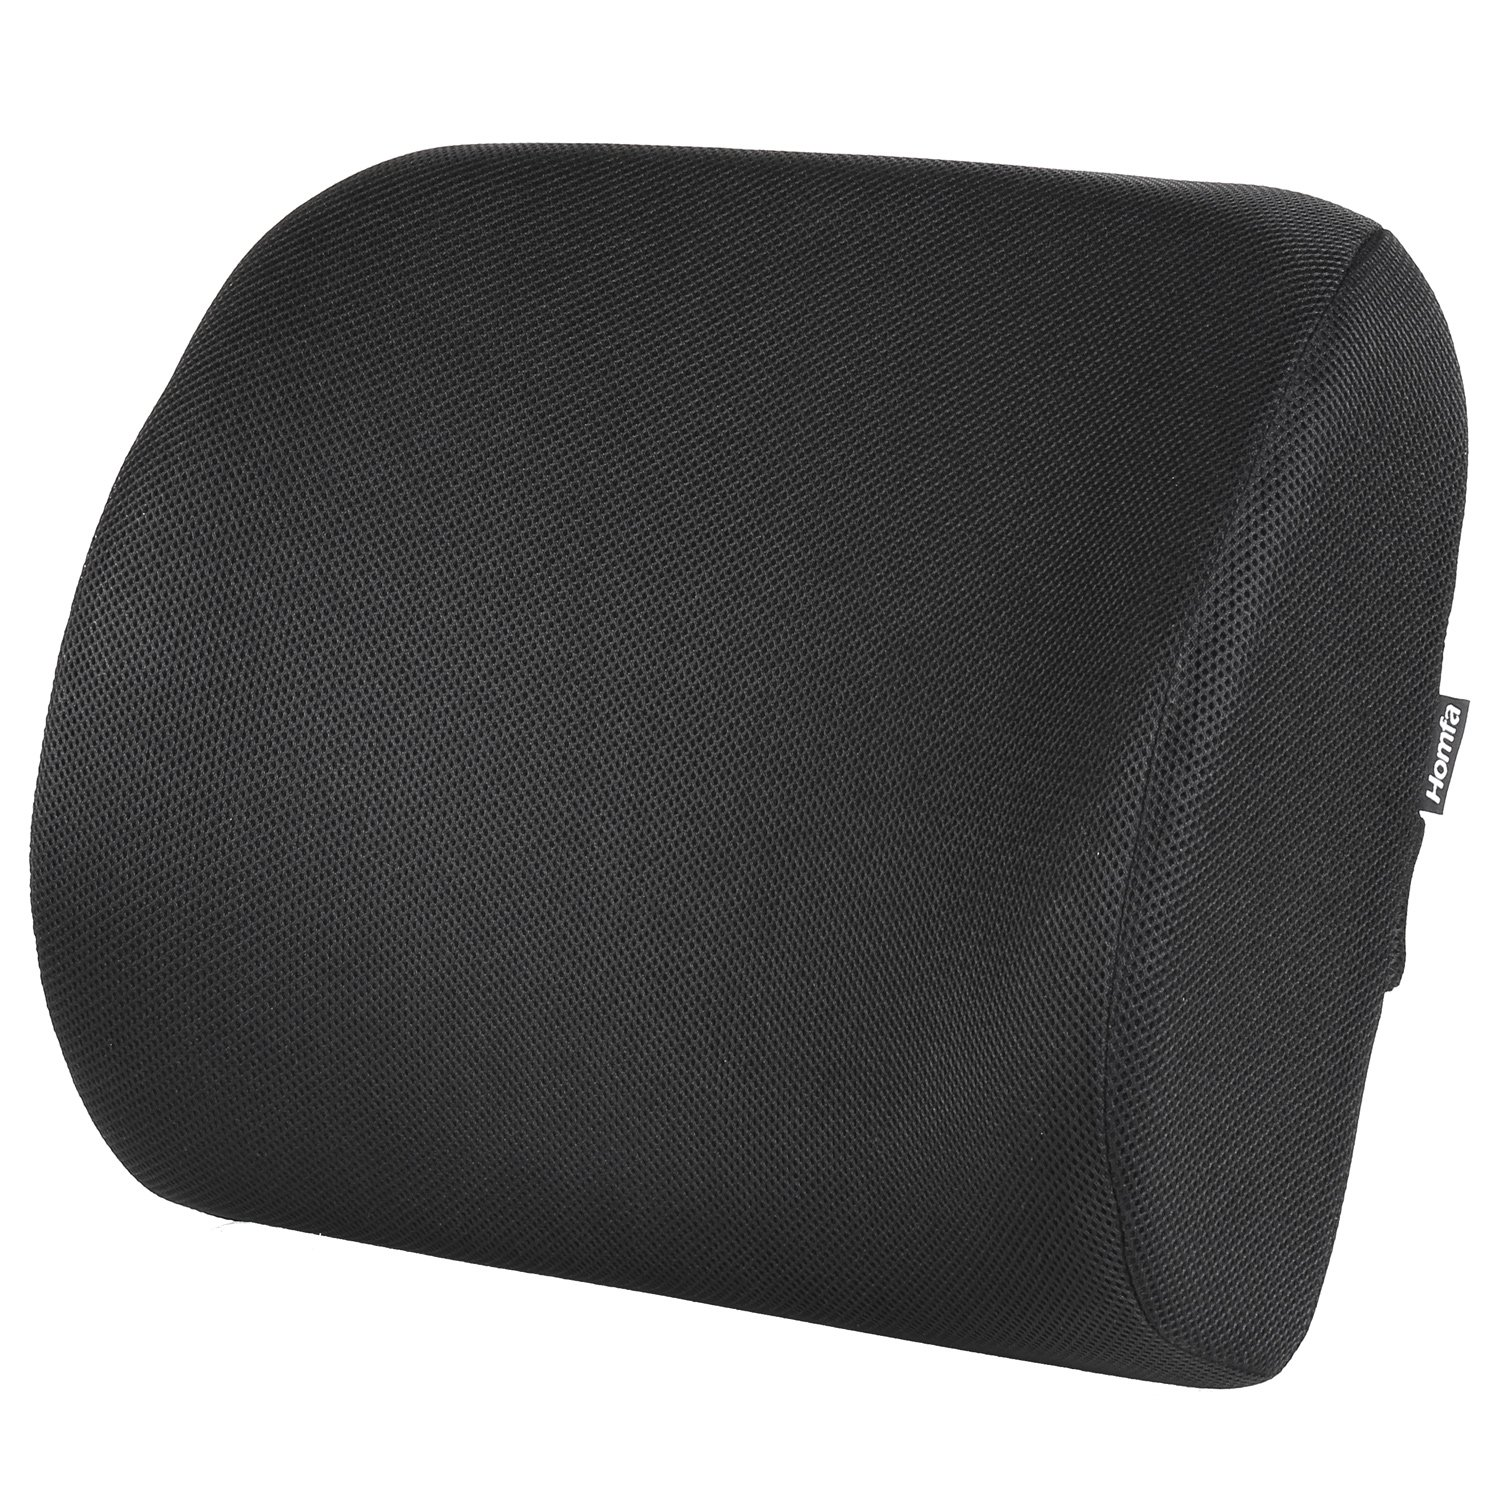 HOMFA Lumbar Pillows Back Cushion Memory Foam Cushion Relief Back Pain Use for Office Chair,Car and Home HF